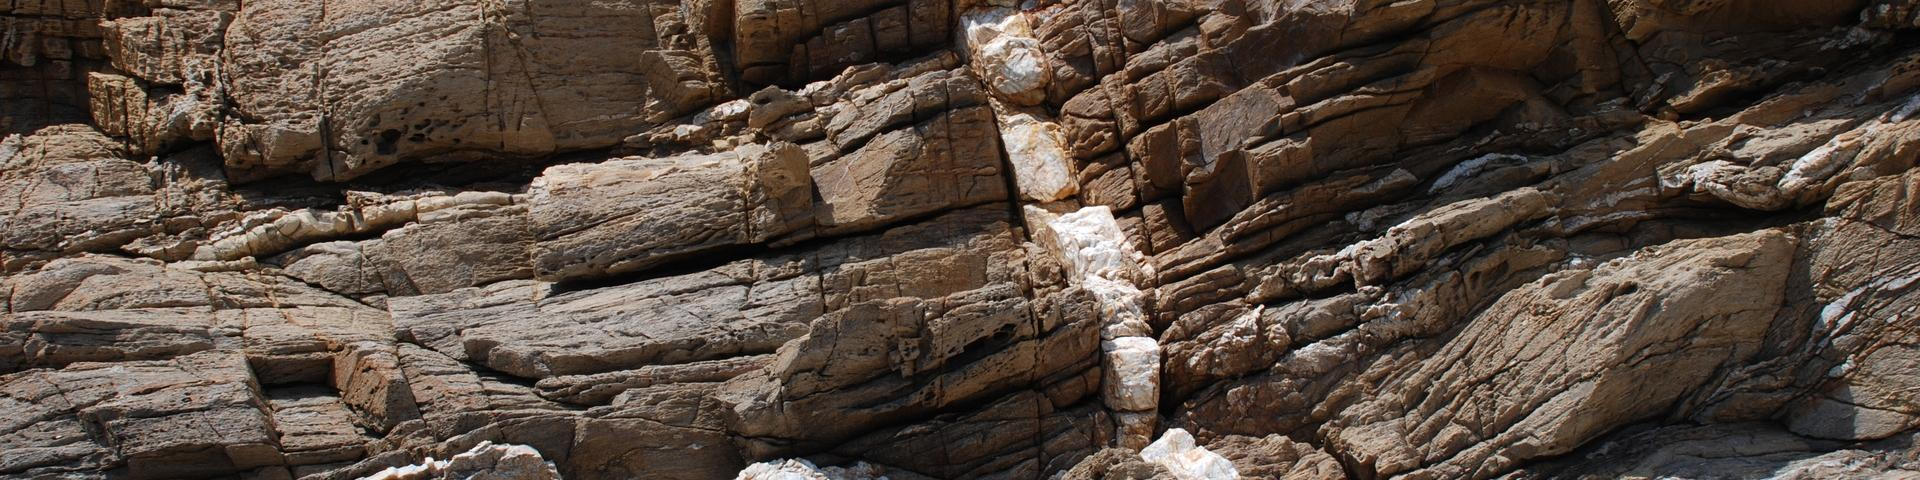 Quartz vein running through gneiss in the Maures massif, Var